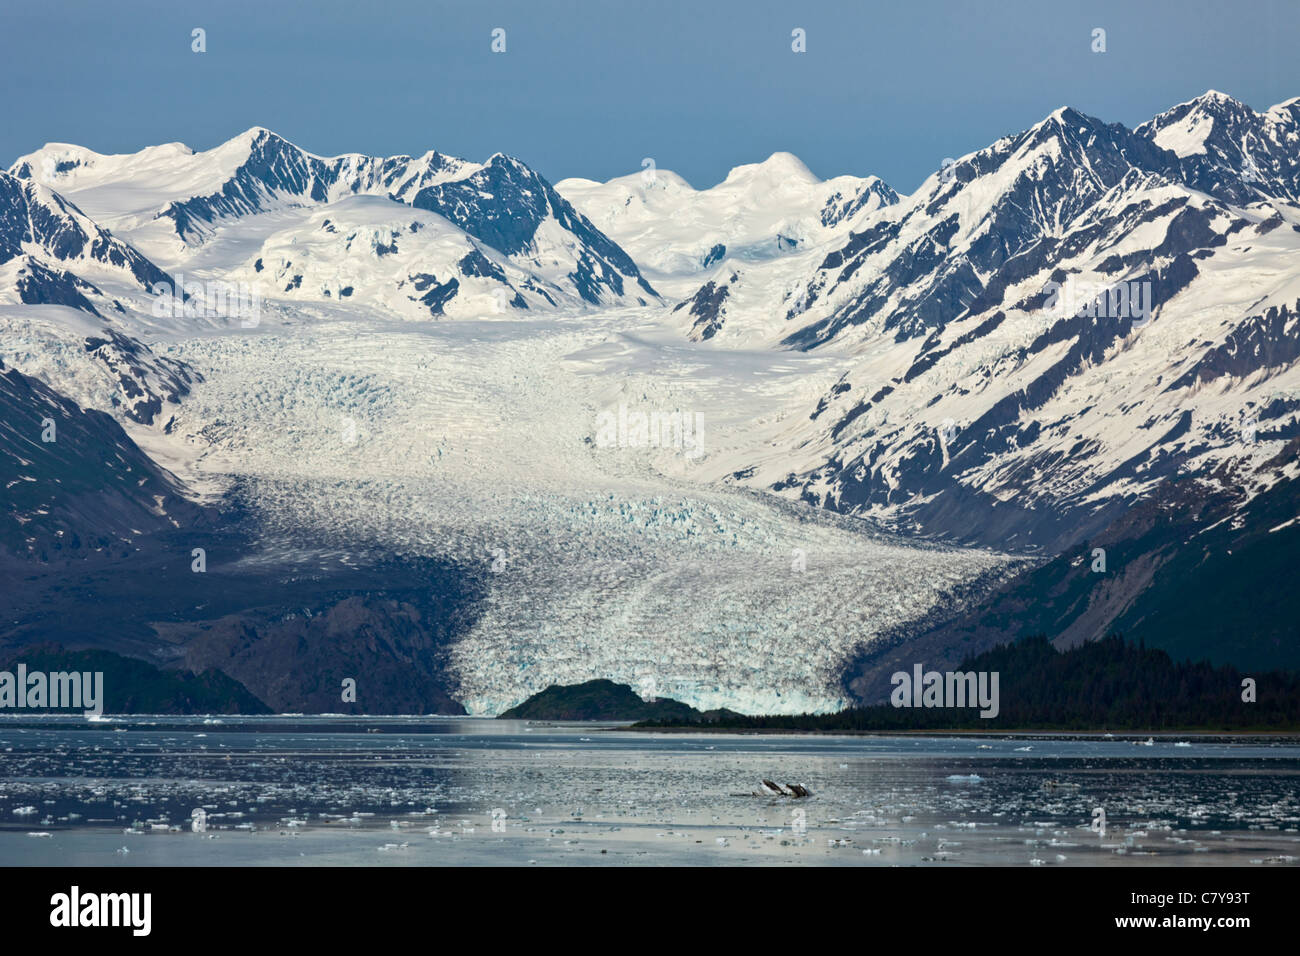 Distant view of Yale Glacier in College Fjord, Alaska - Stock Image